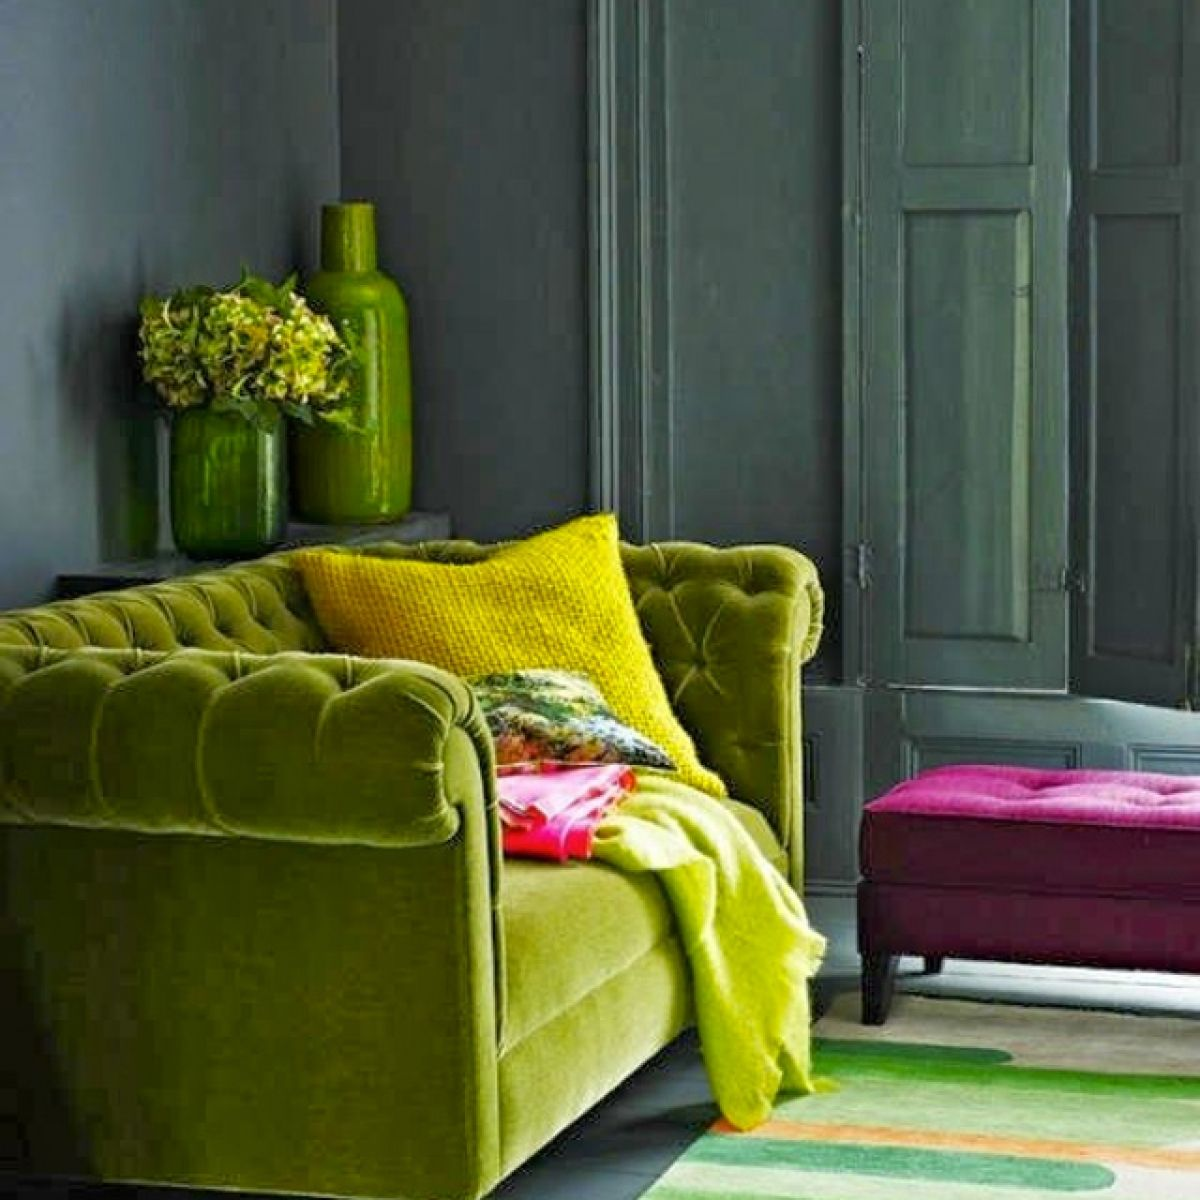 Velvet green sofa with dark grey walls and shutters pink footstool